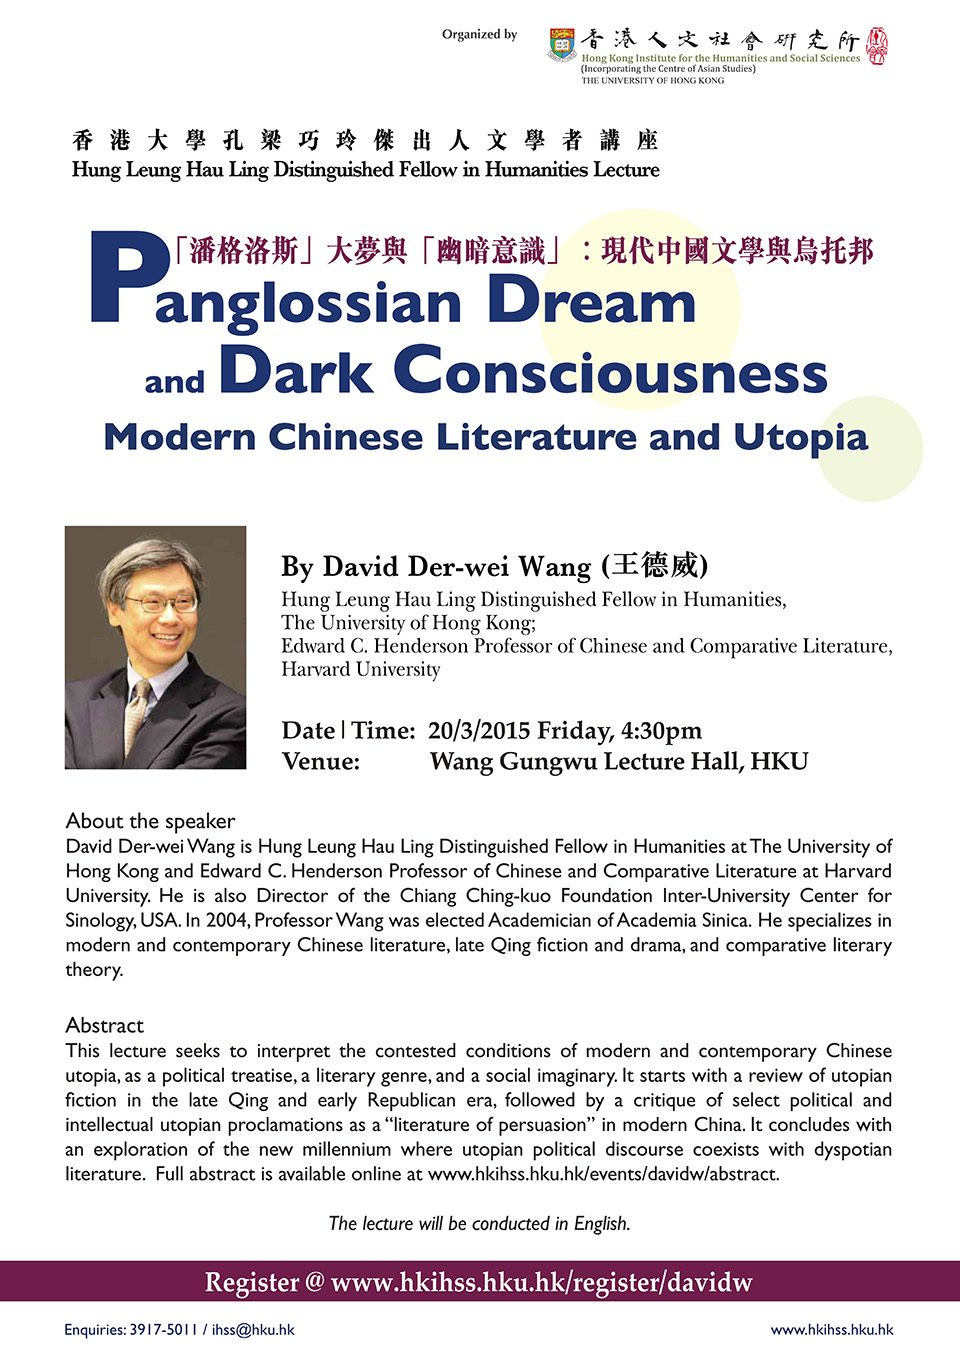 "Hung Leung Hau Ling Distinguished Fellow in Humanities Lecture on ""Panglossian Dream and Dark Consciousness: Modern Chinese Literature and Utopia"" by Professor David Der-wei Wang (March 20, 2015)"